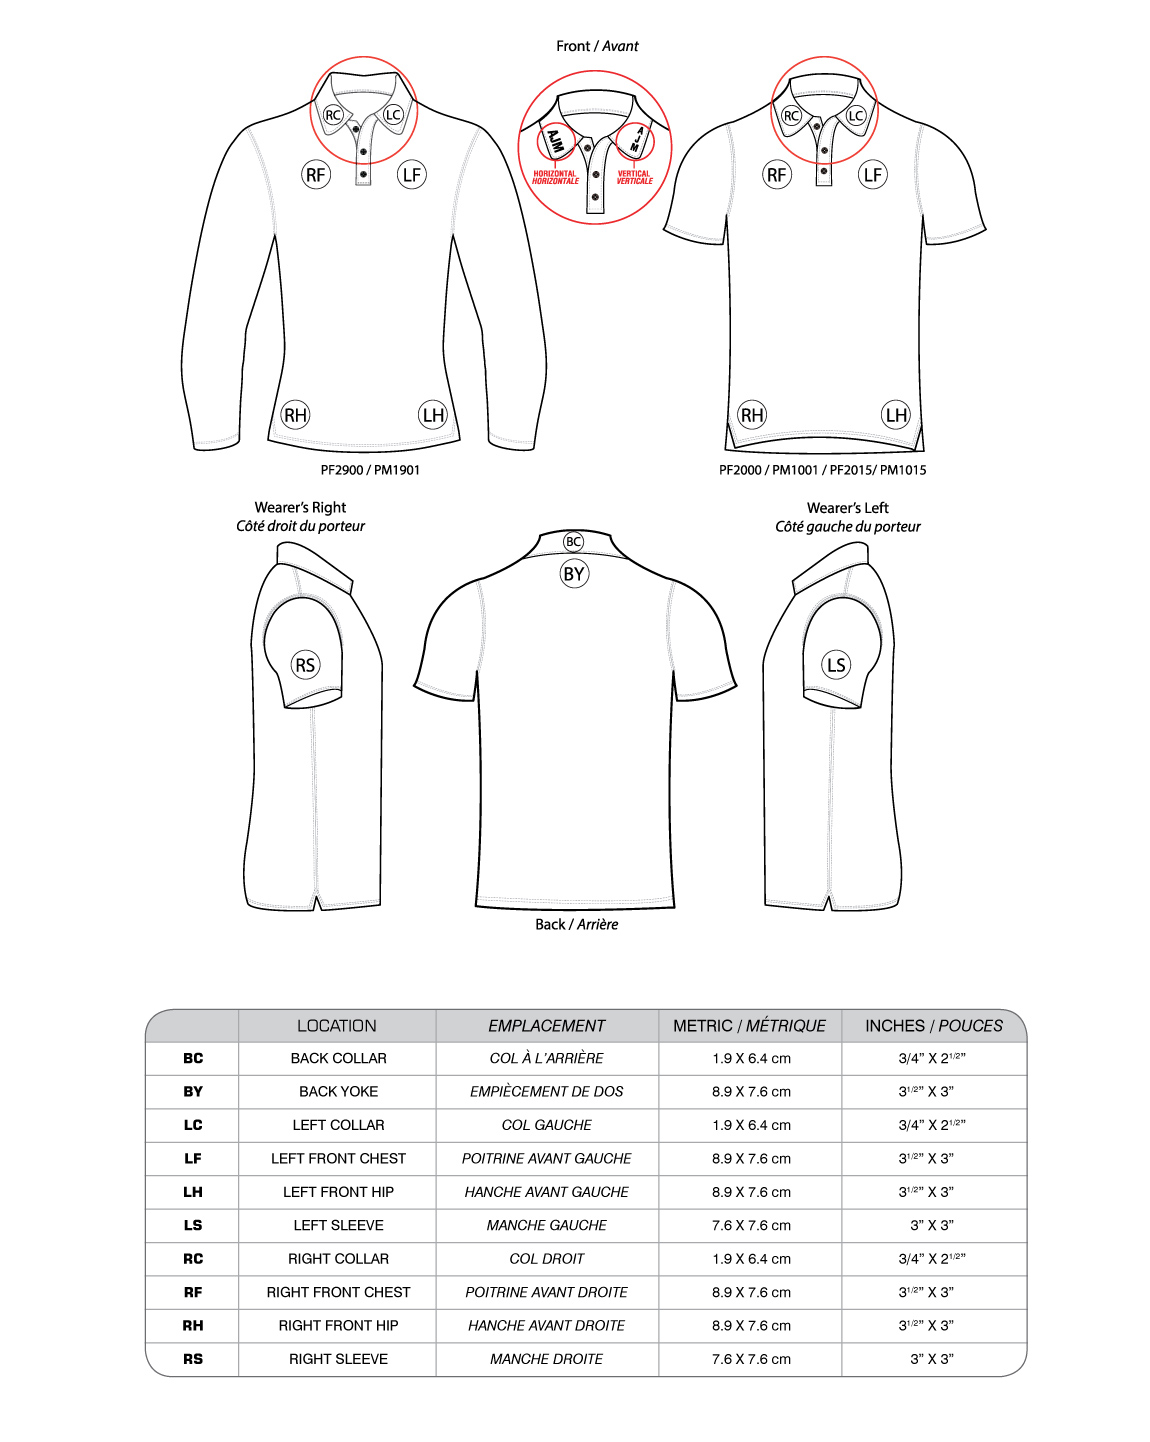 Embroidery Location Chart for Polo Shirts